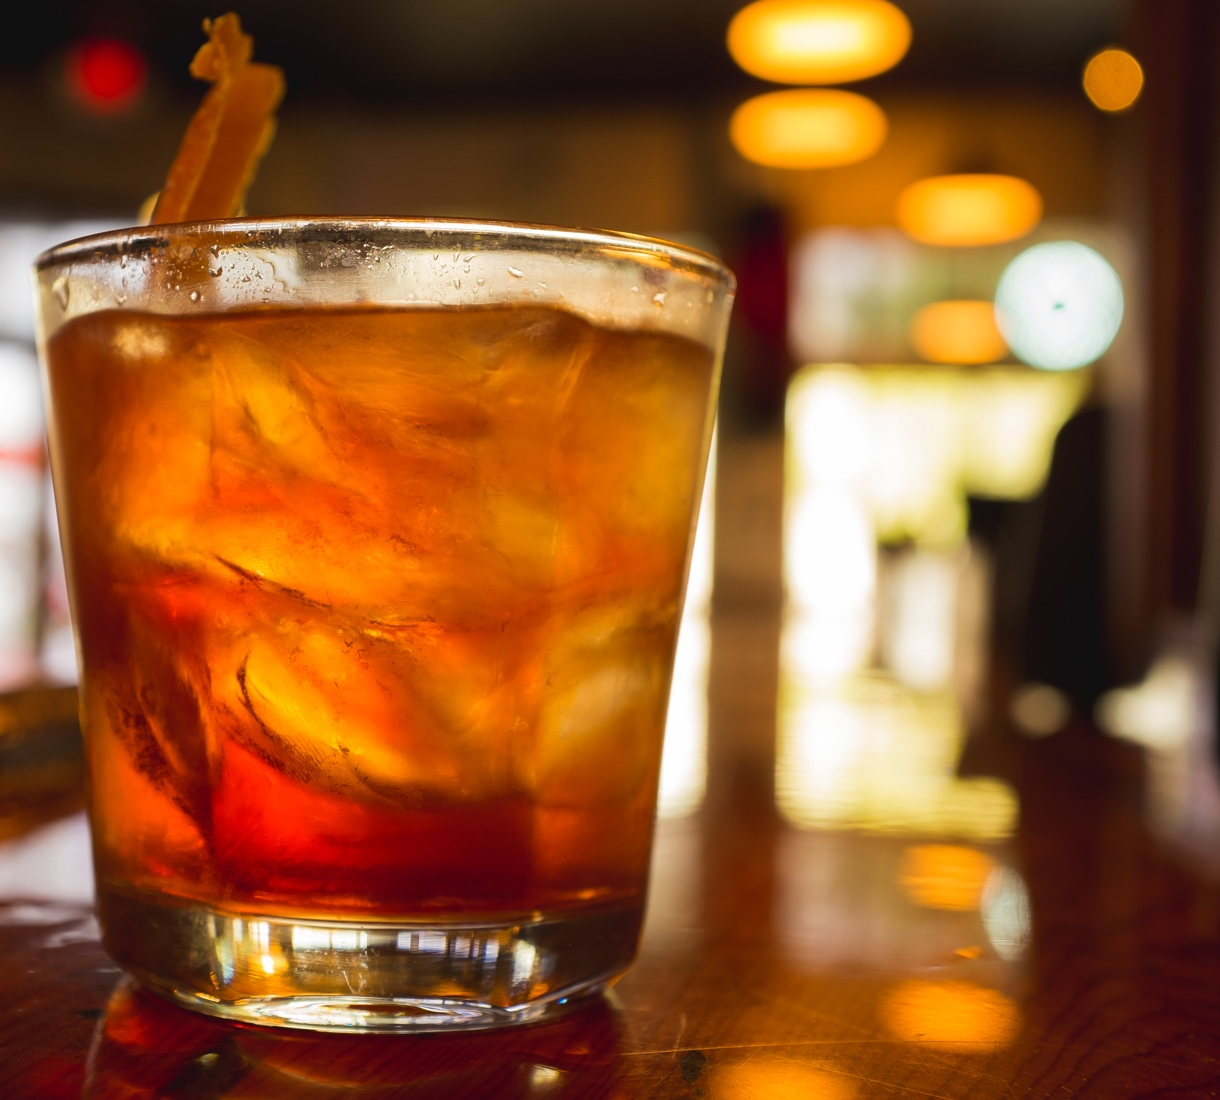 Fri/Sat Special: - 10:00pm -close$5 Old Fashioneds & Sazeracs$6 Wines By the Glass$5.00 bomb shots